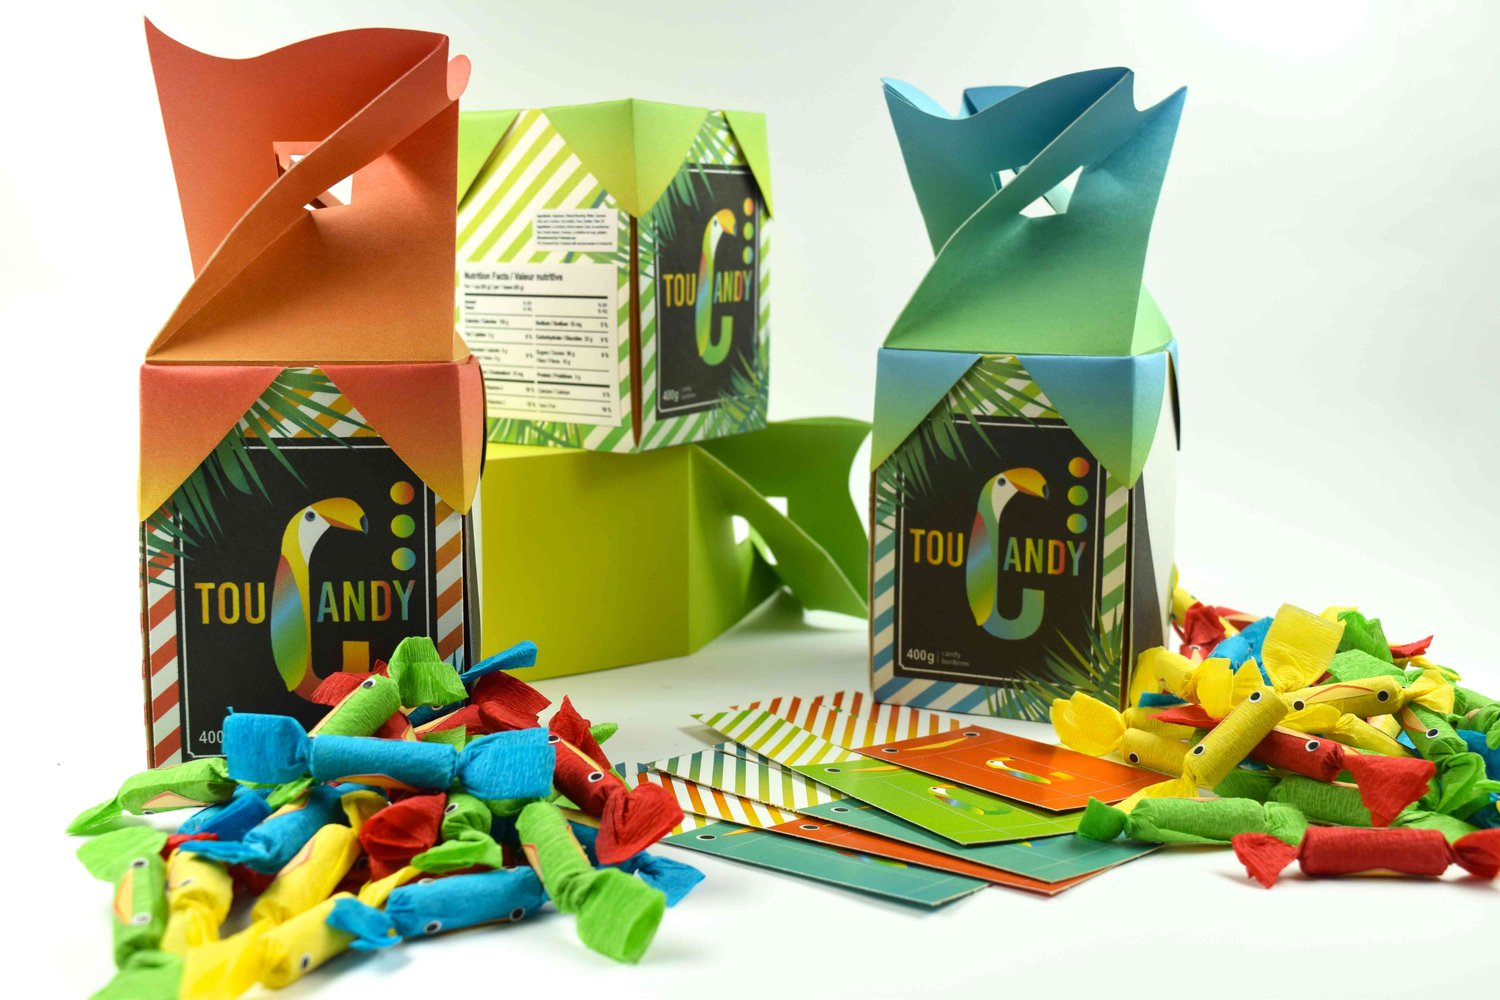 Toucandy Package Design